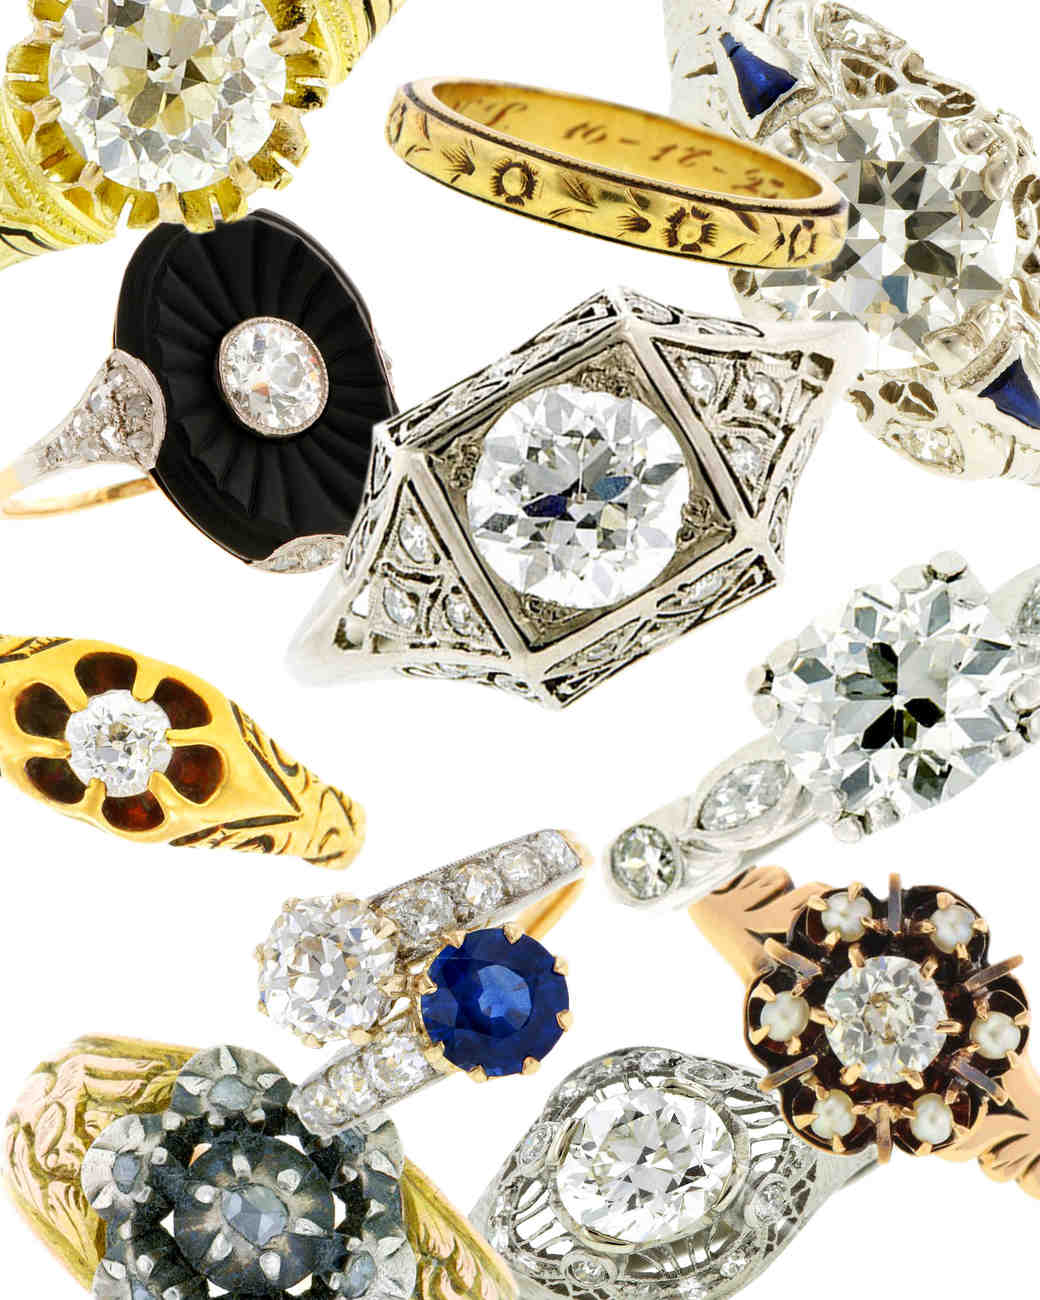 11 Tips for Finding a Vintage Engagement Ring You'll Cherish